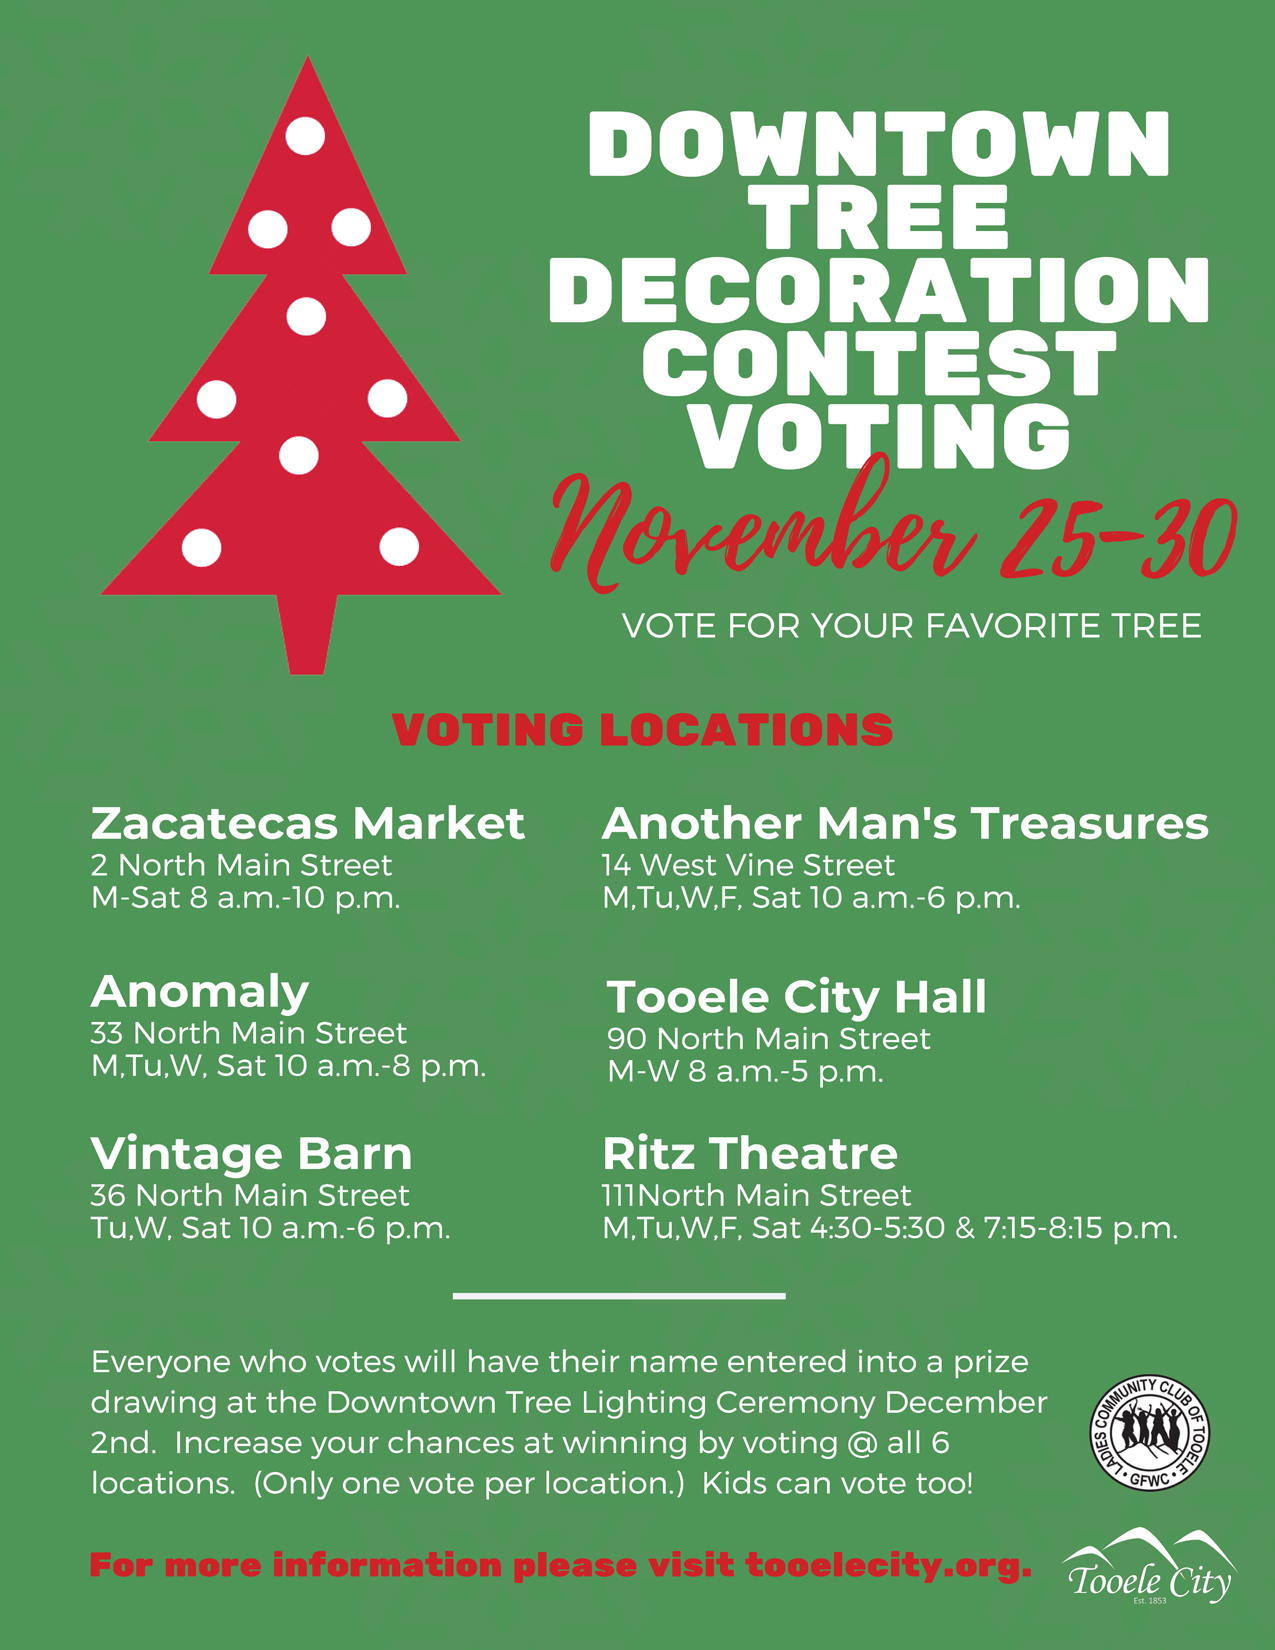 Downtown Tree Decorating Contest Voting Locations 2019